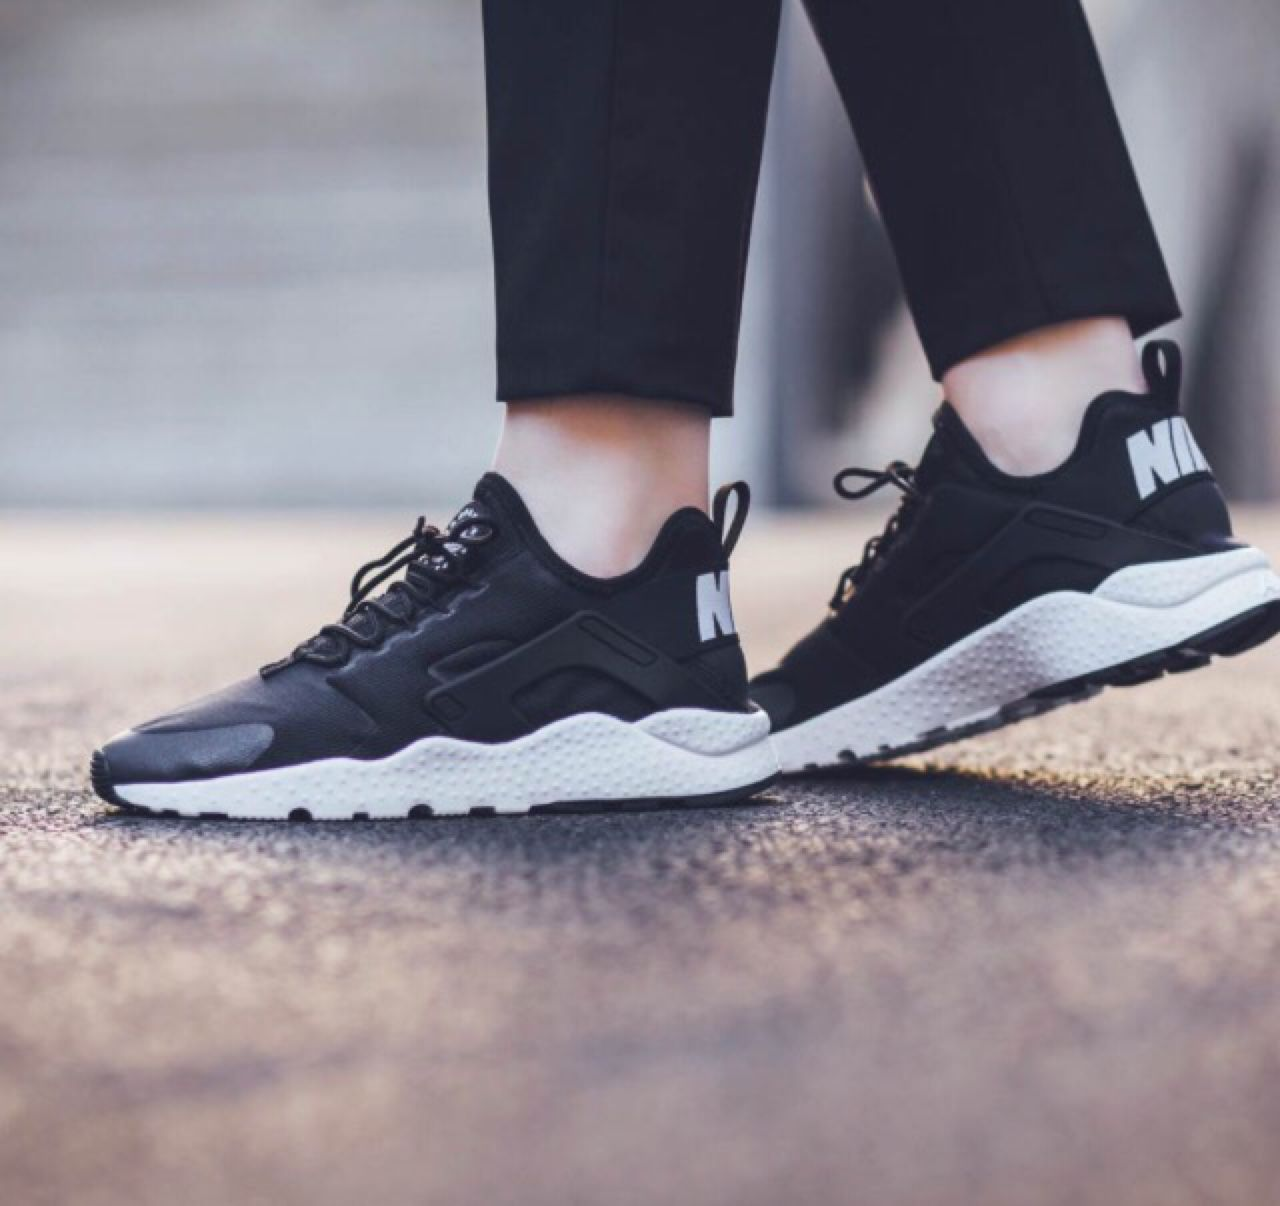 black nike running shoes tumblr. sneakers nike : black on white huarache run ultra running shoes tumblr